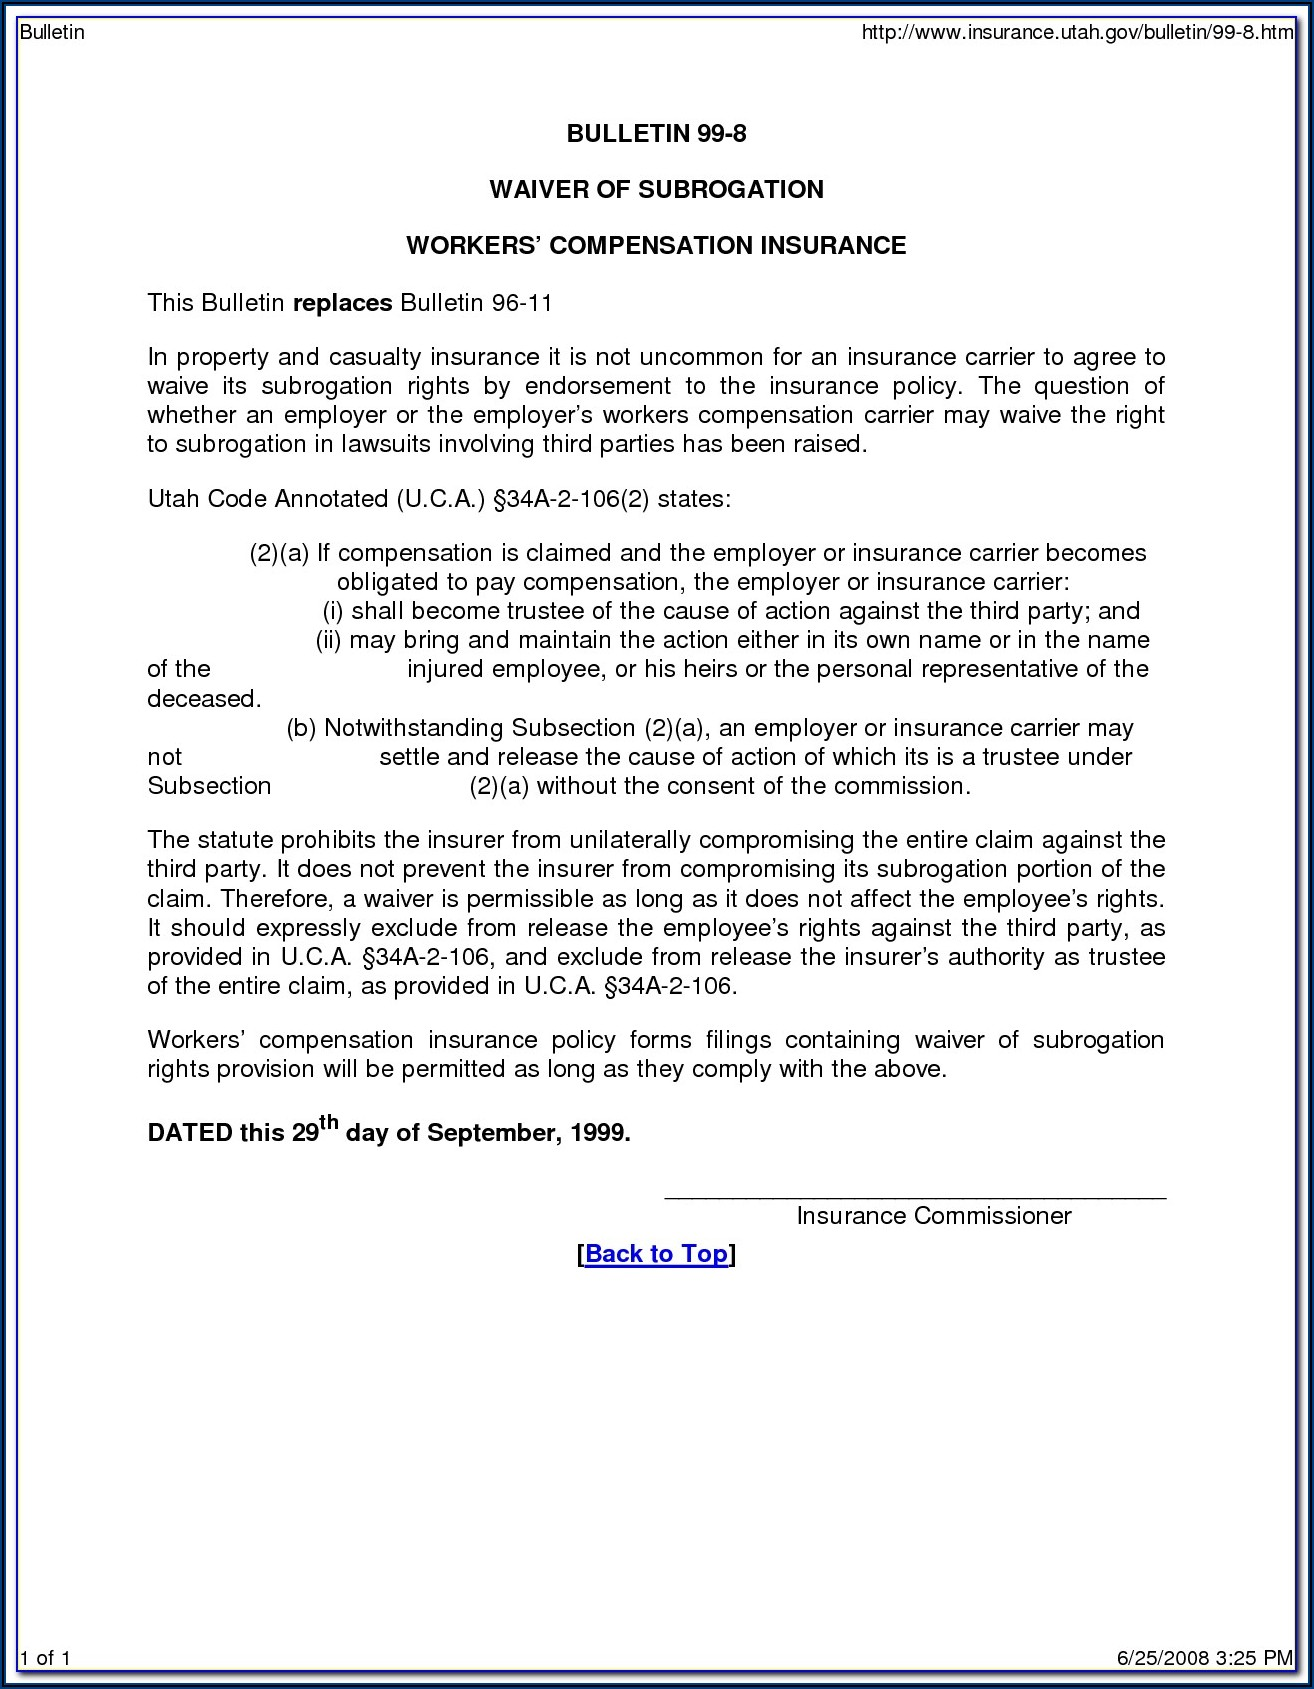 Texas Workers Compensation Waiver Of Subrogation Form